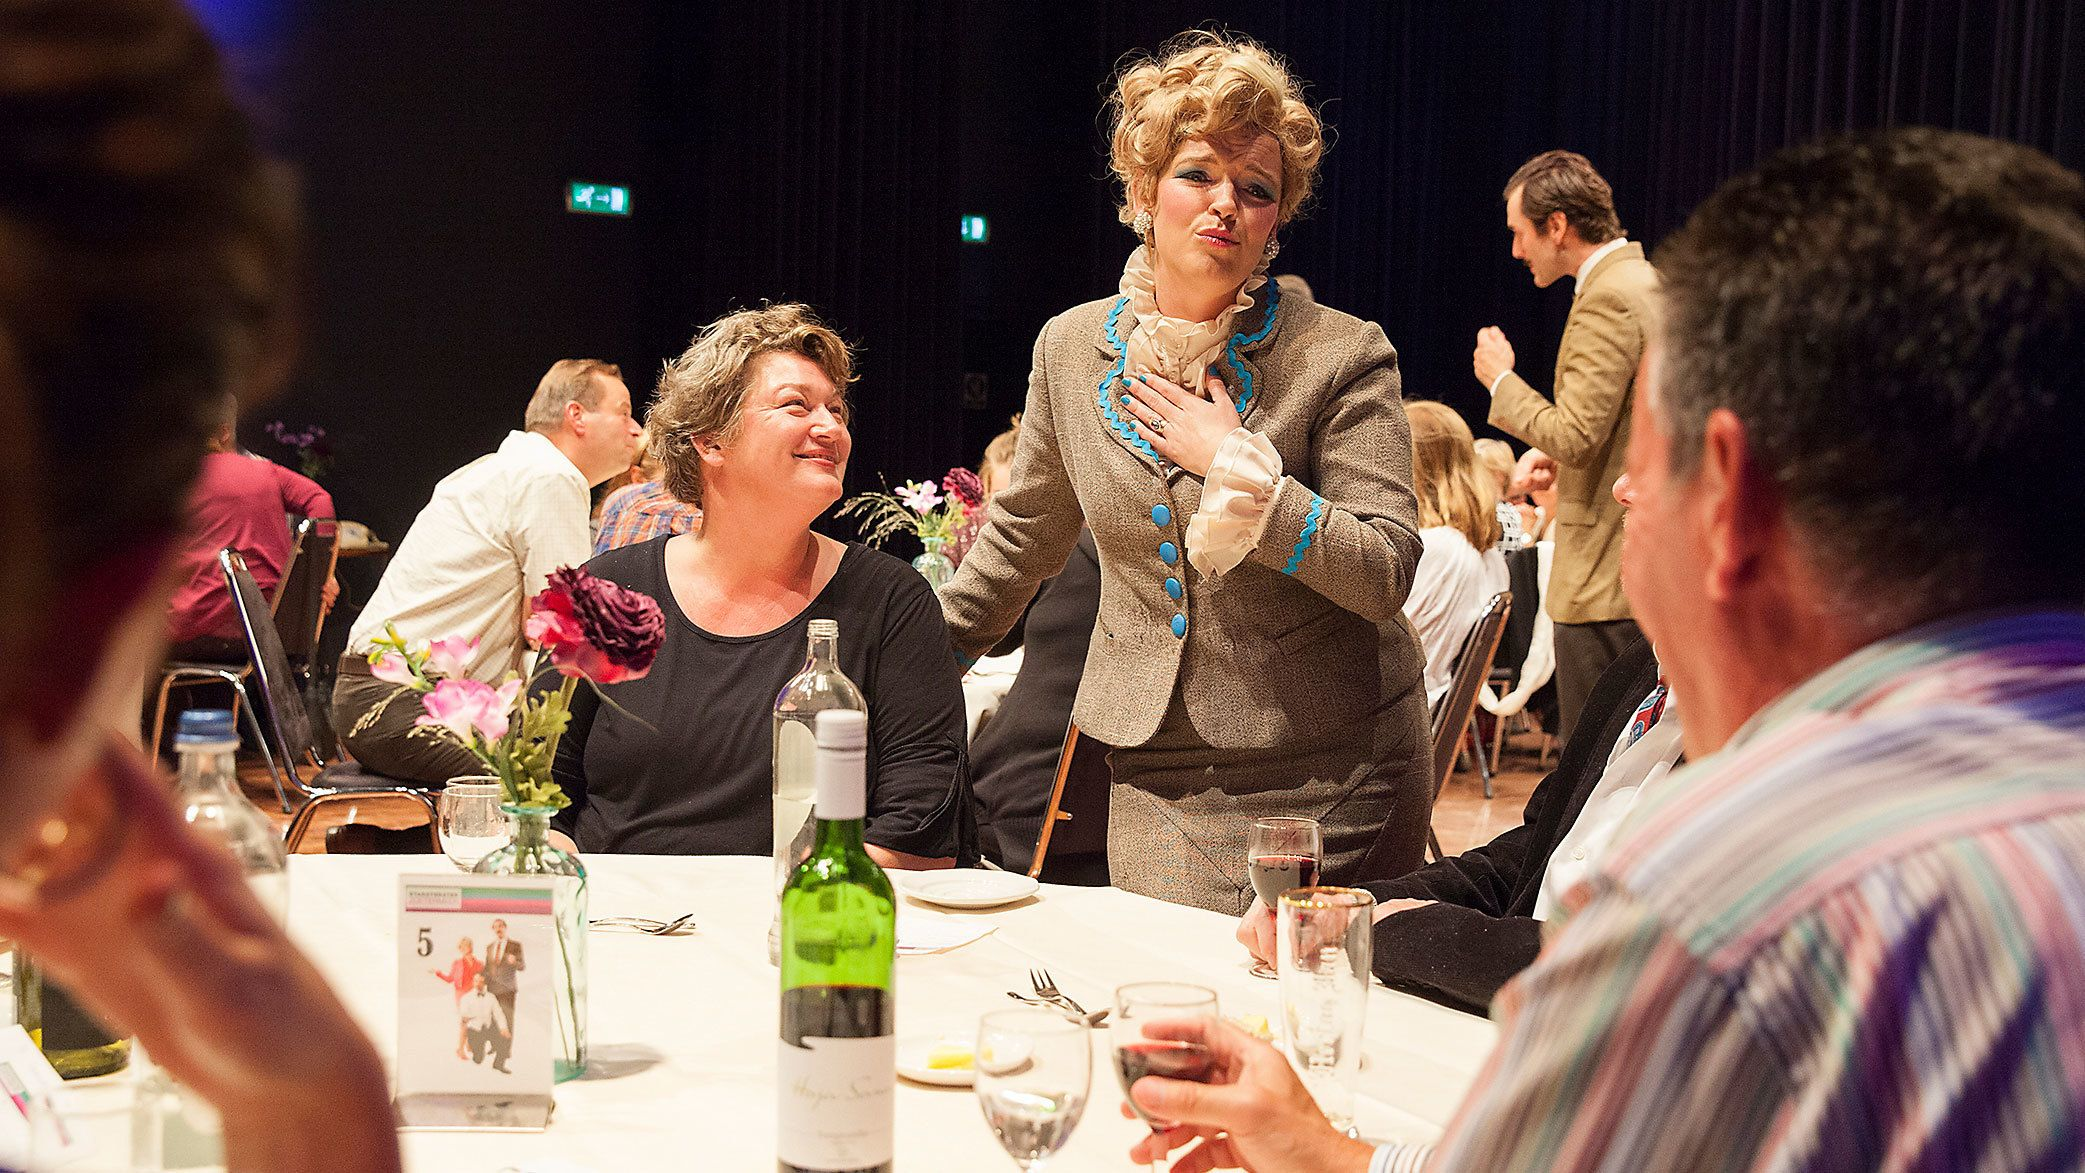 Actress socializing with dinner guests during Faulty Tower in Edinburgh